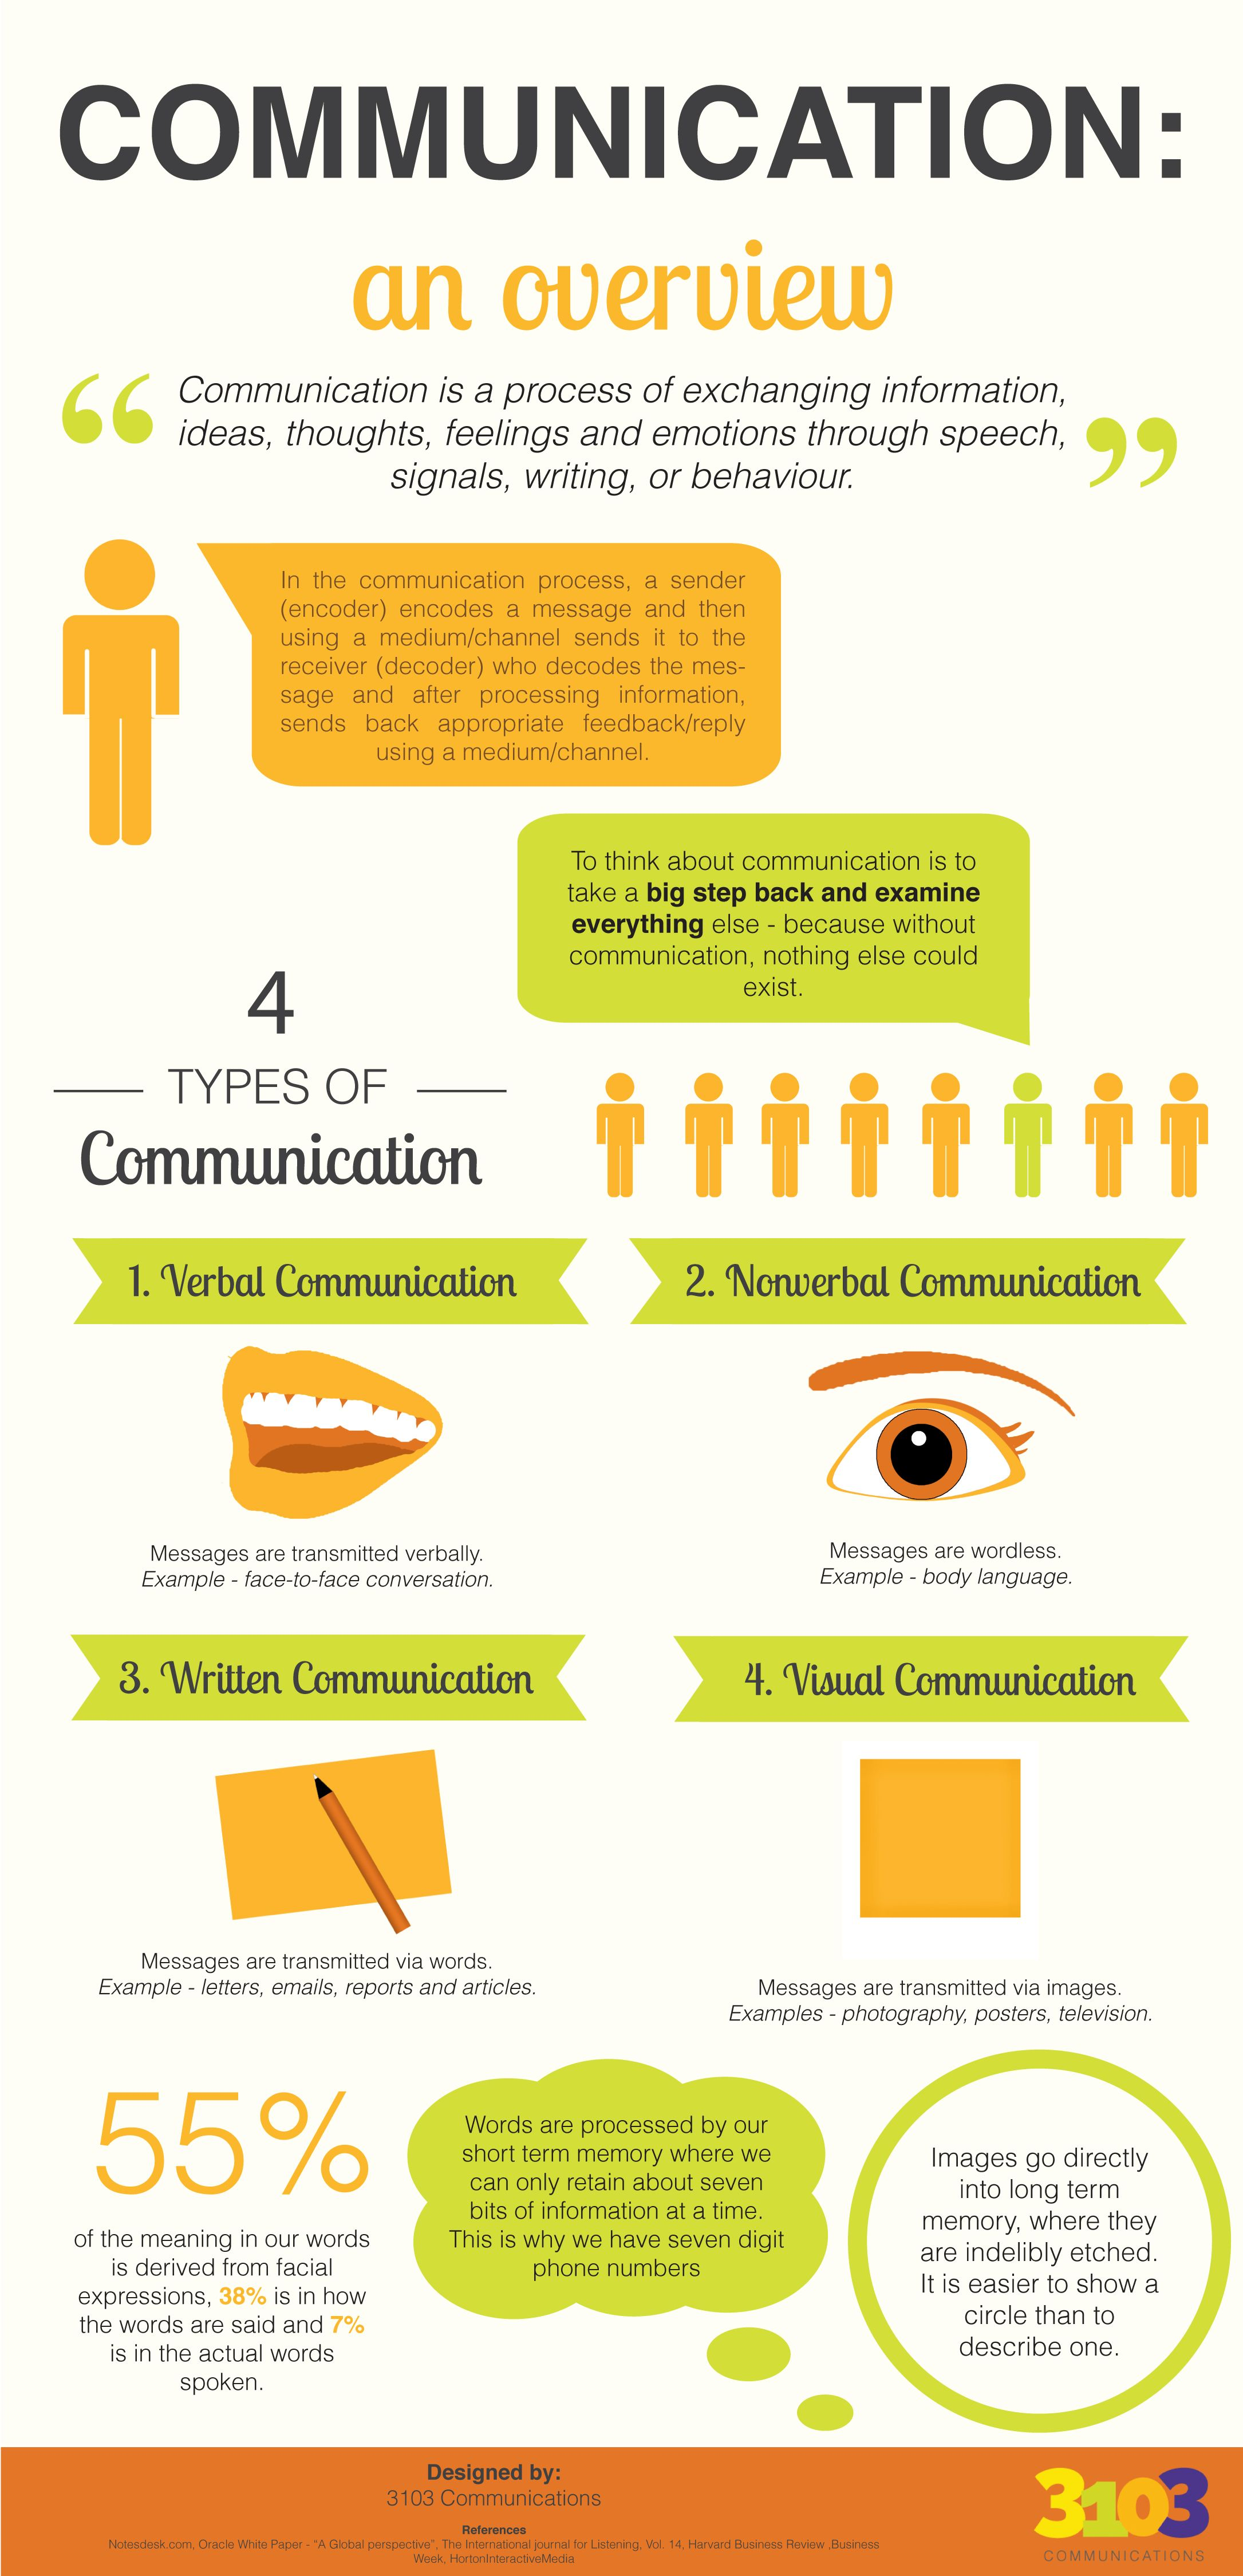 communication an overview designed by communications communication skills are the key to developing and keeping friendships and to building a strong social support network learn how to communicate more